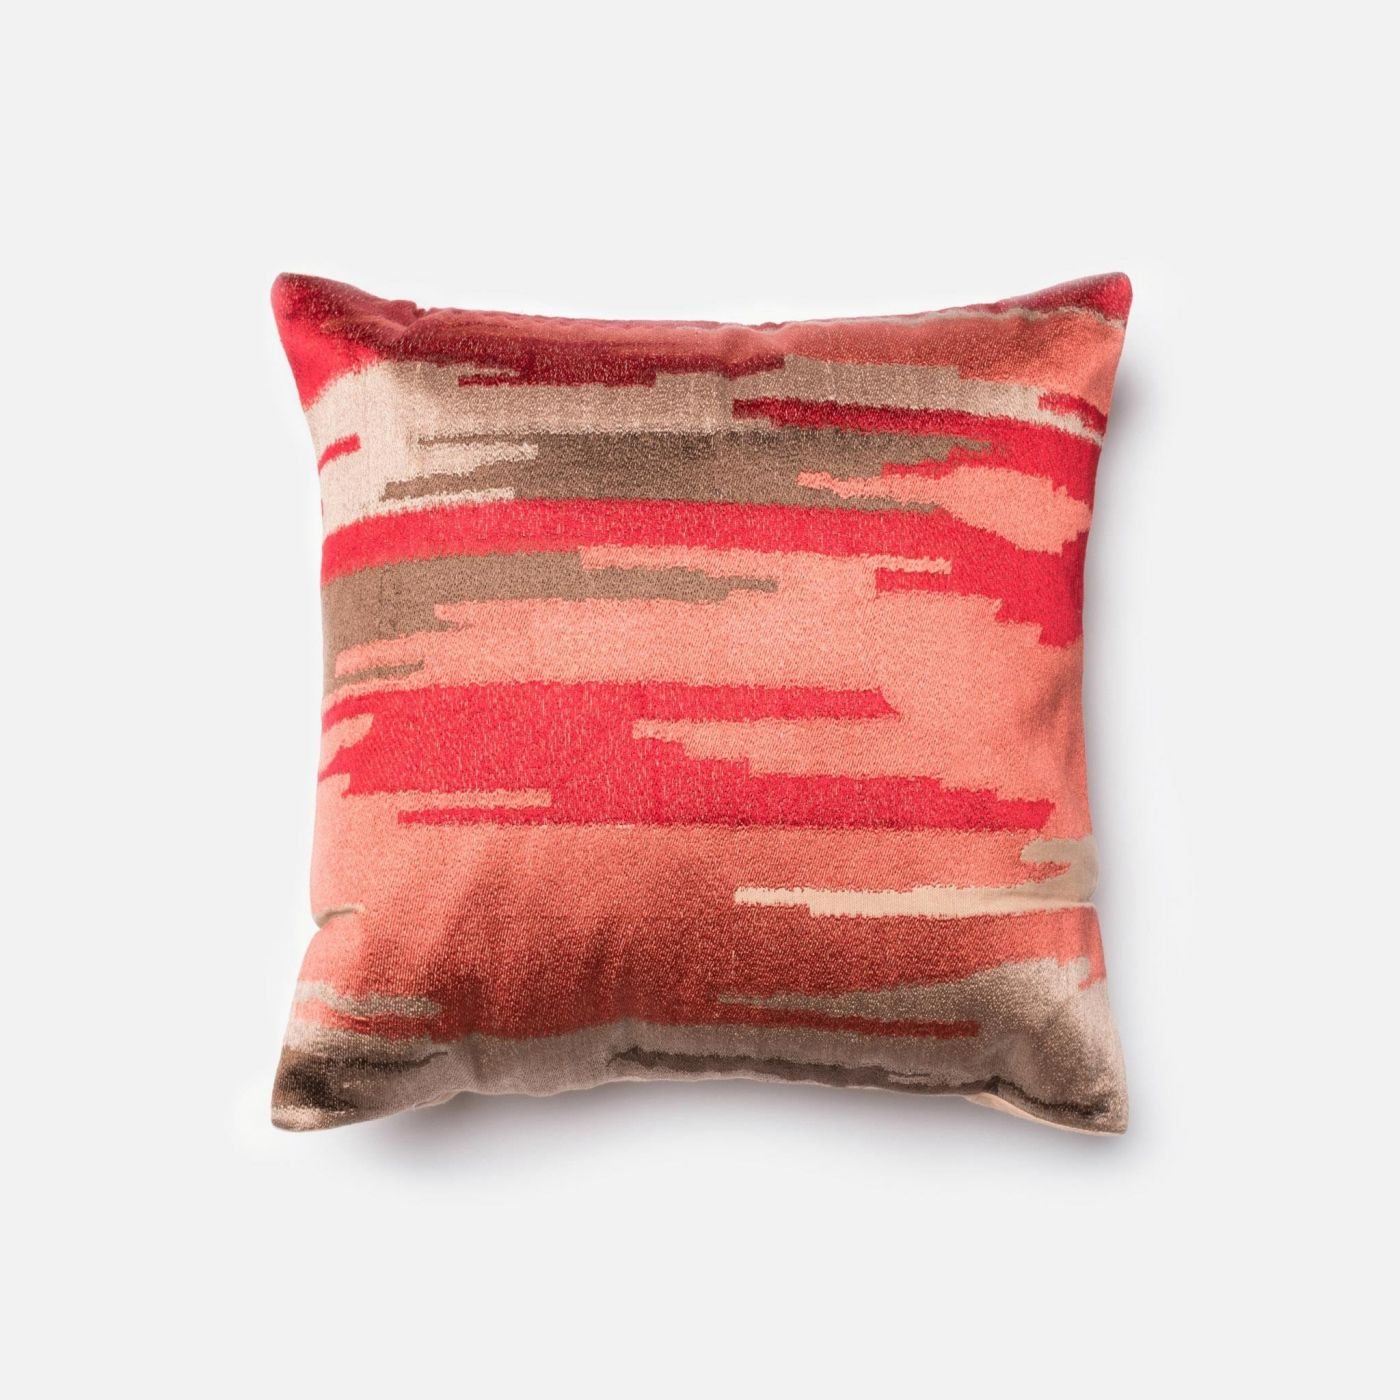 Throw Pillow Warehouse : Loloi Rugs Loloi Coral Decorative Throw Pillow (P0028) DSETP0028CO00PIL1. Only $89.00 at ...